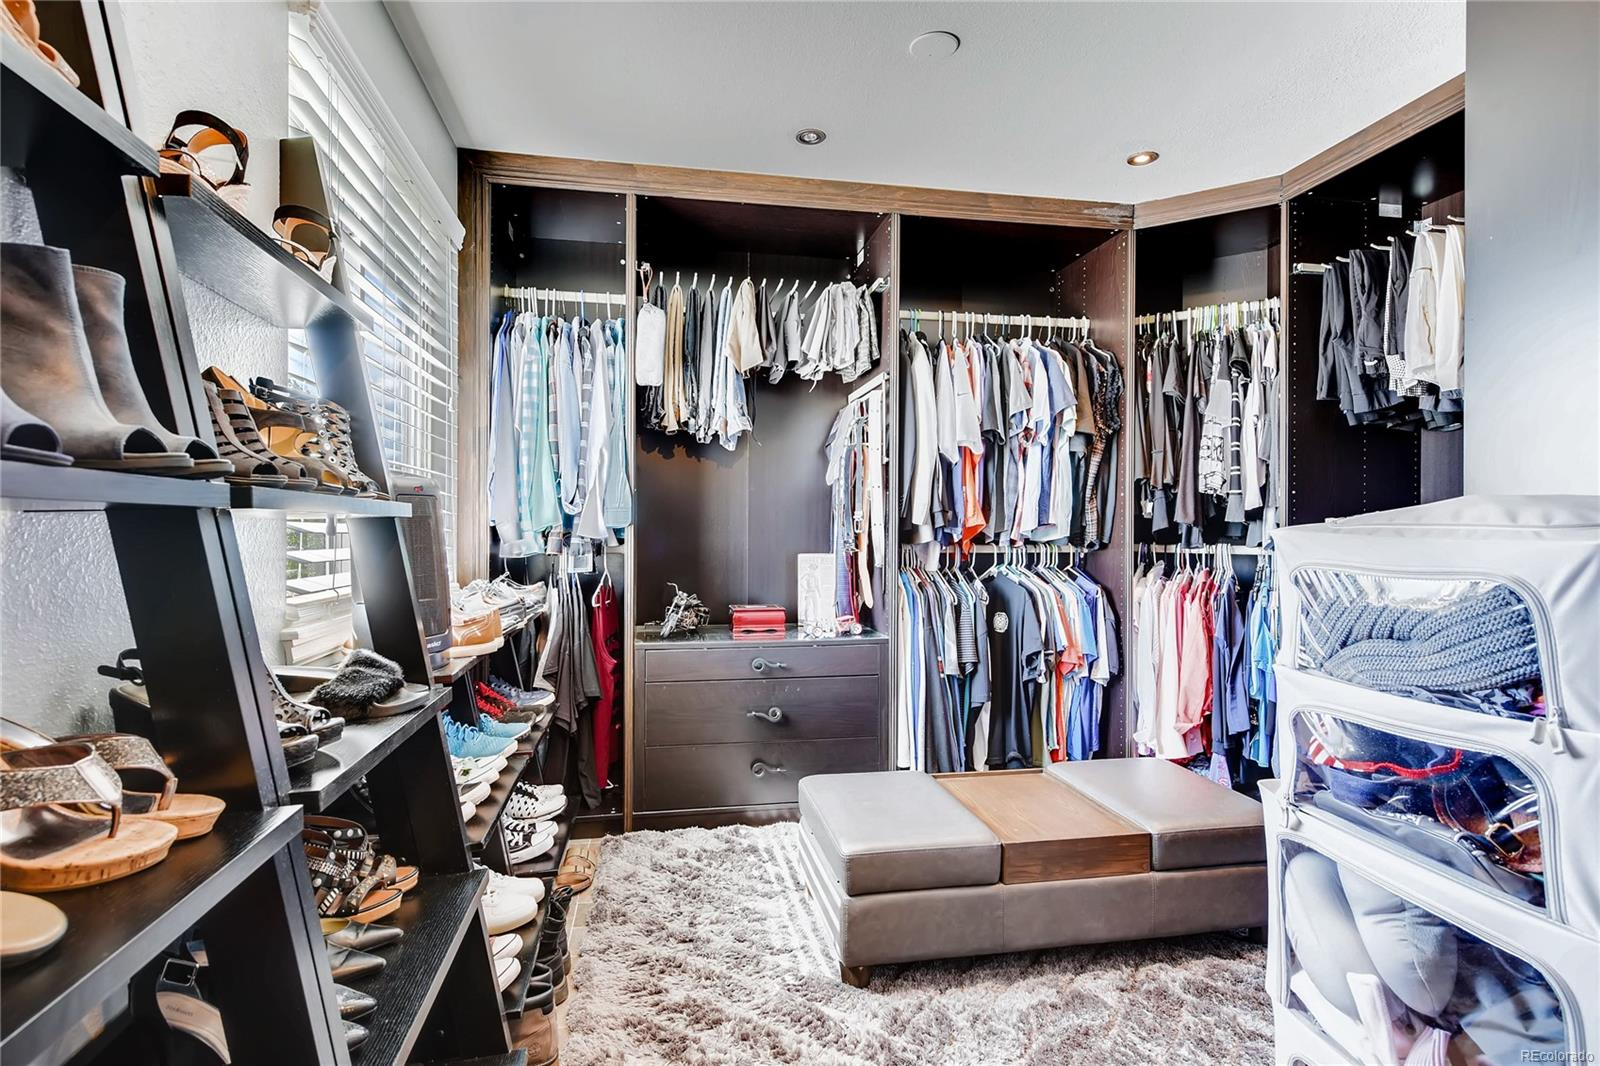 The master closet is a touch from heaven! The professionally installed closet organizers allow you to showcase your wardrobe, shoes and accessories.